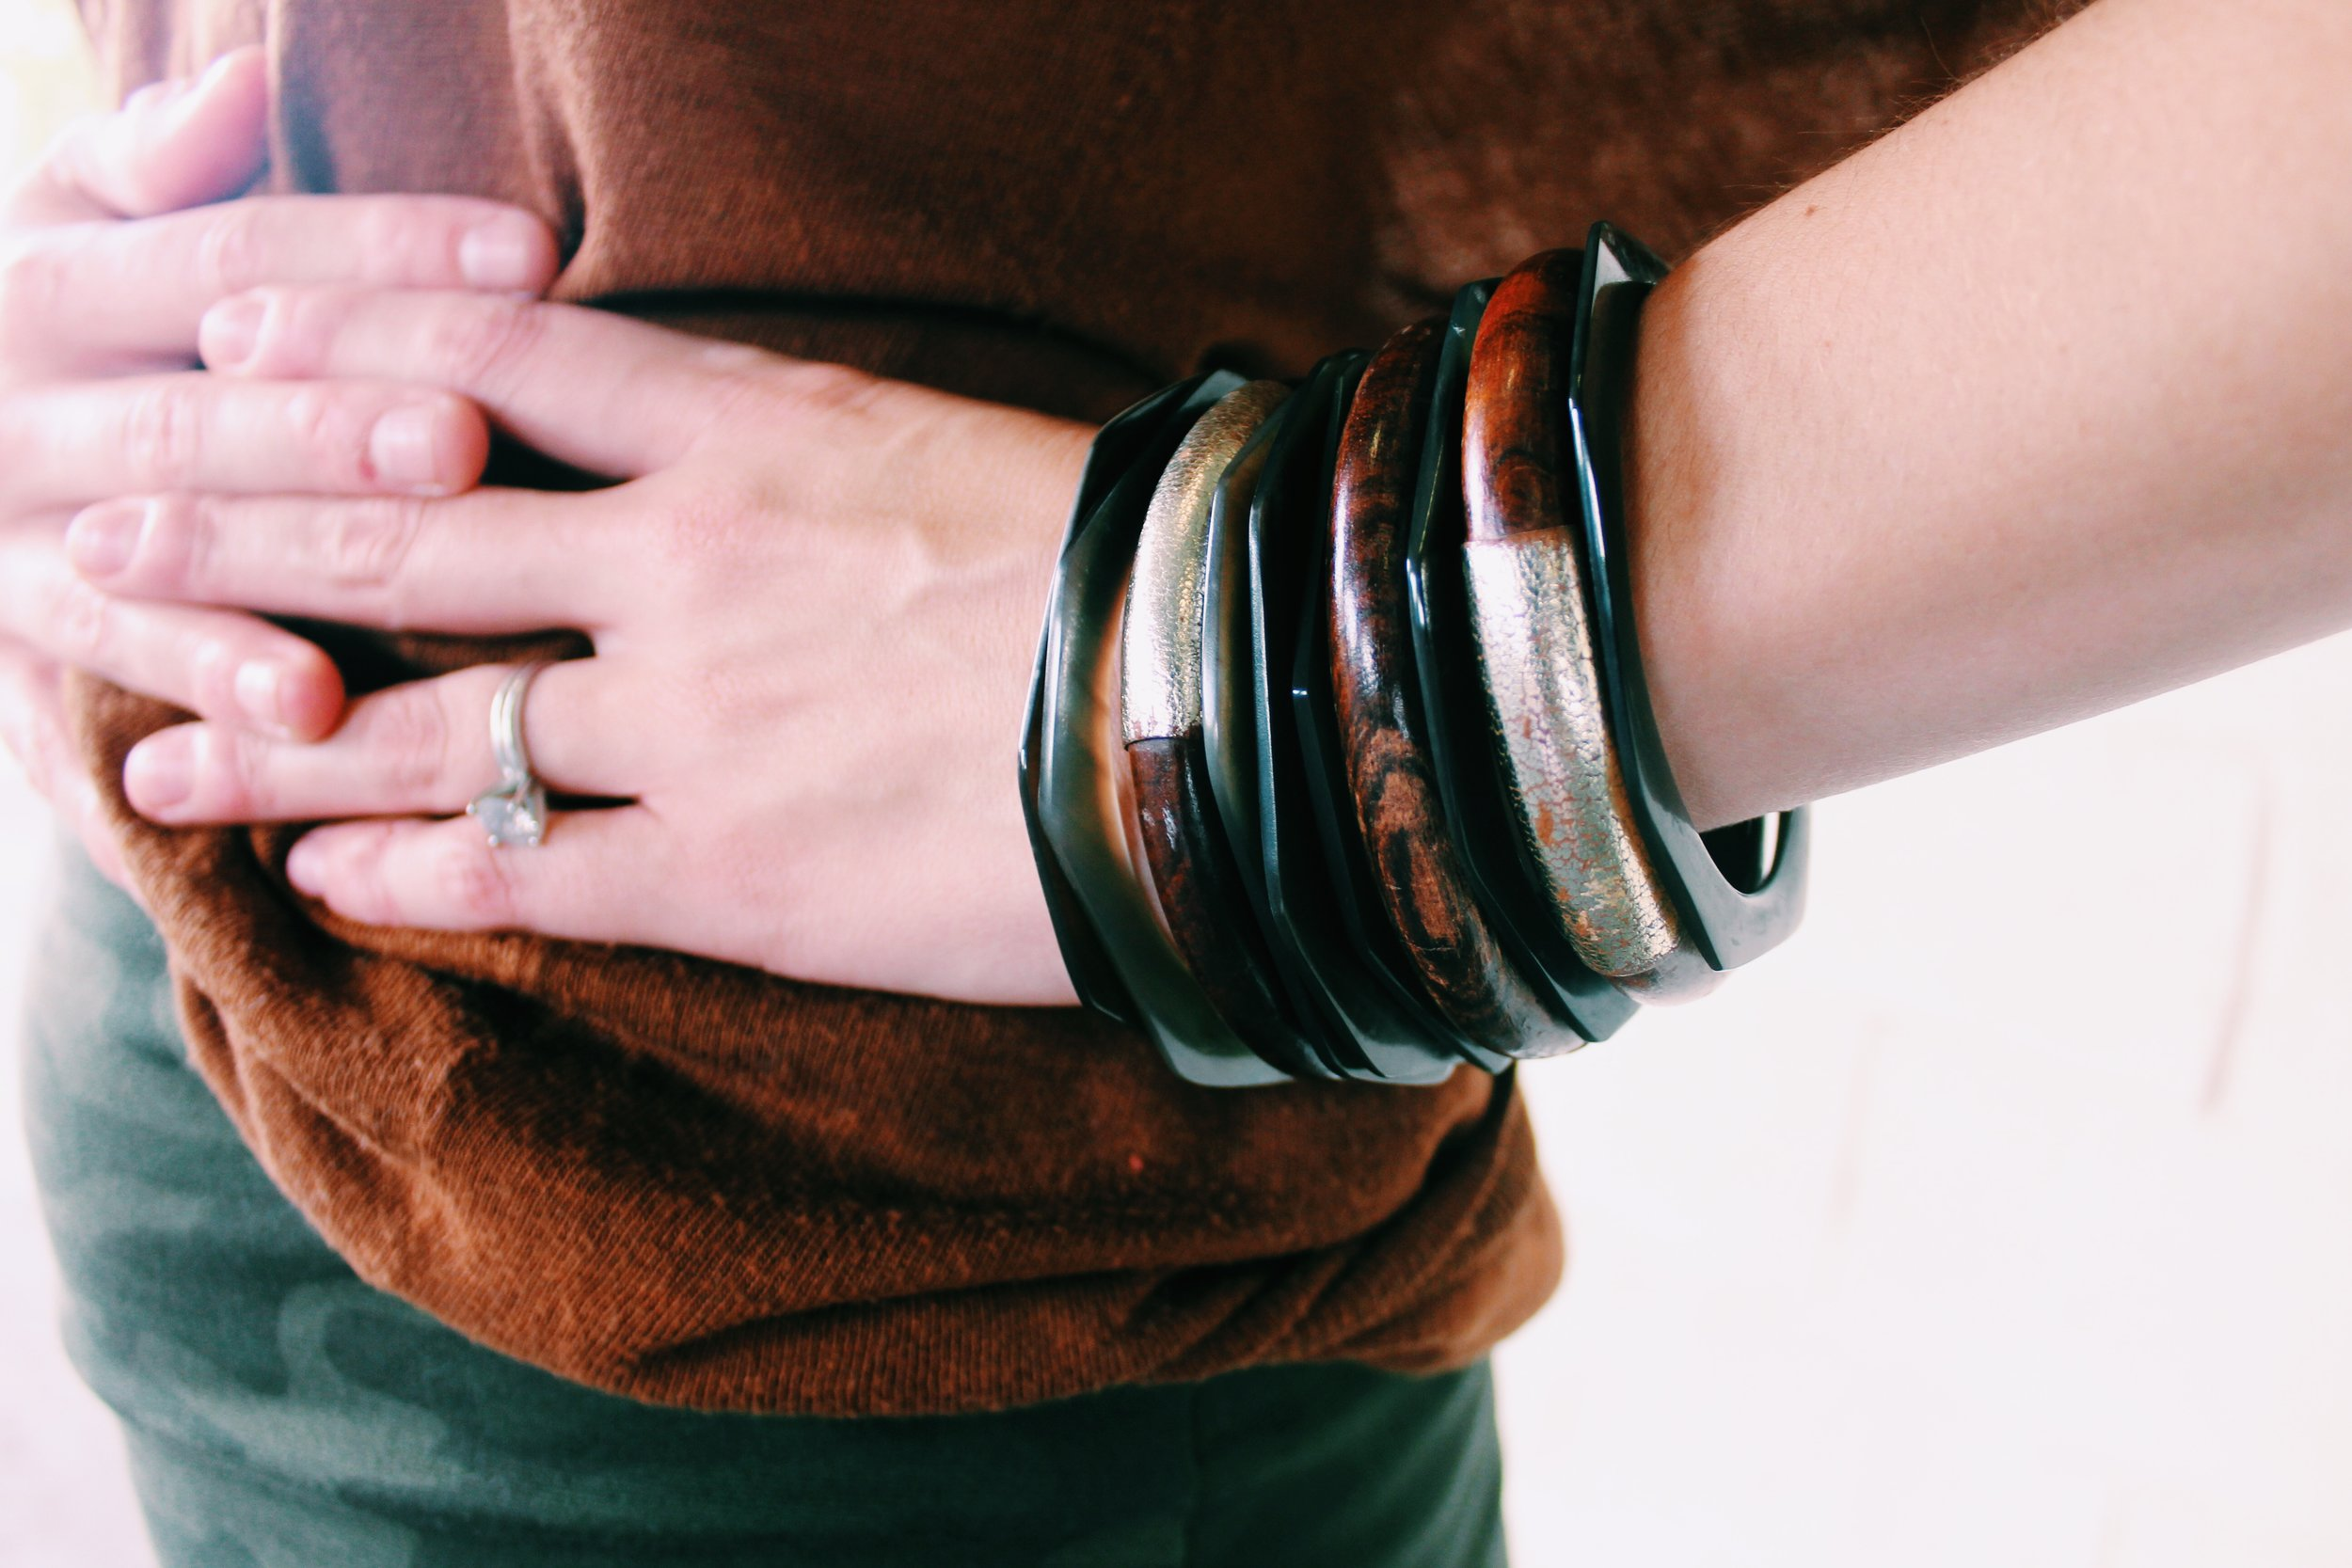 Stack it up! The more, the merrier when it comes to bangles.